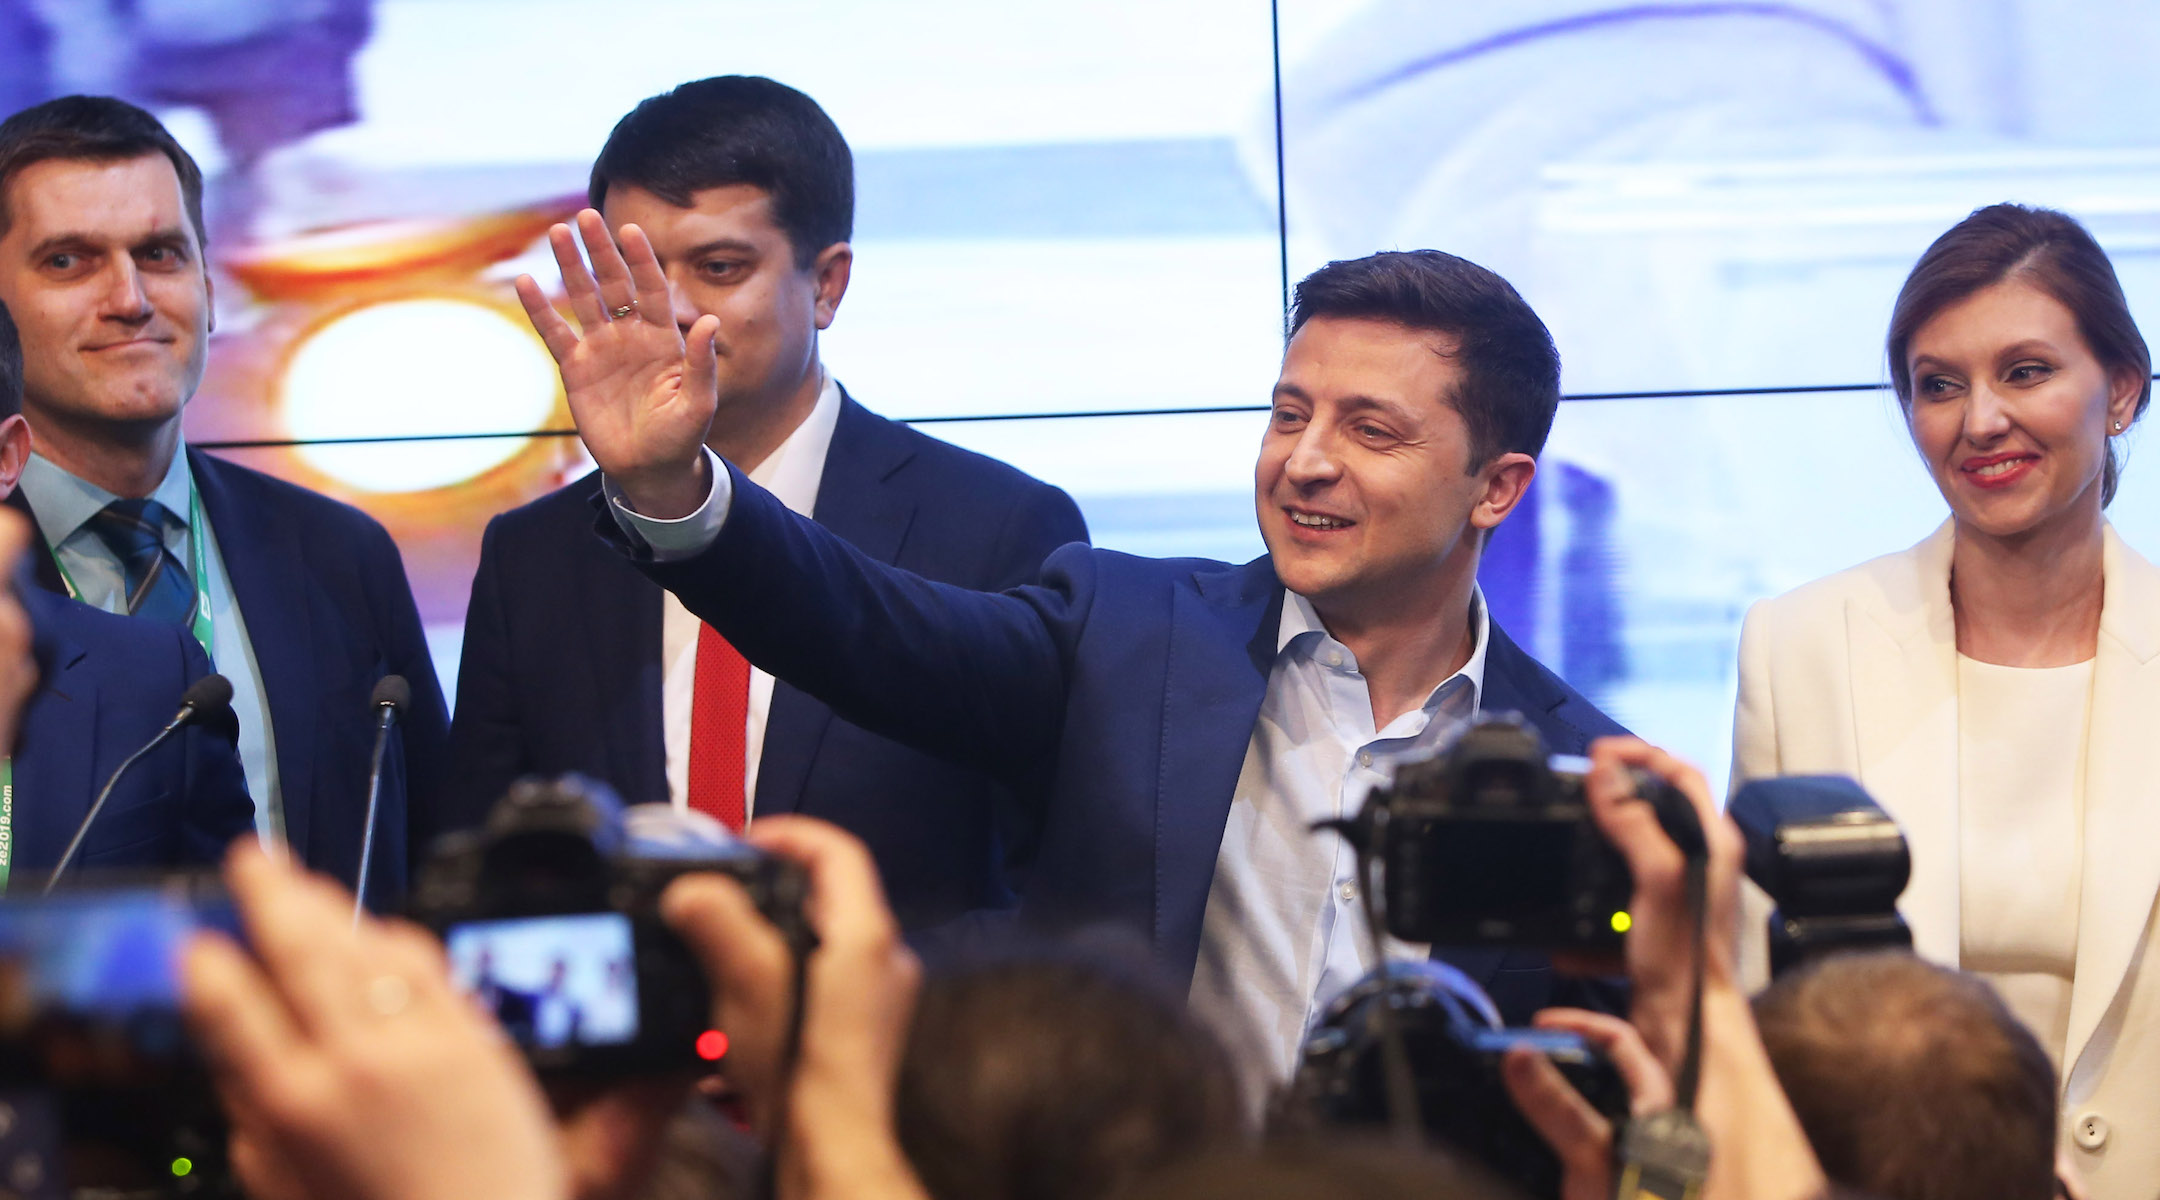 Volodymyr Zelensky, second from right, waves to supporters at his campaign headquarters in Kiev, Ukraine, April 21, 2019. (Xinhua/Sergey/Getty Images)